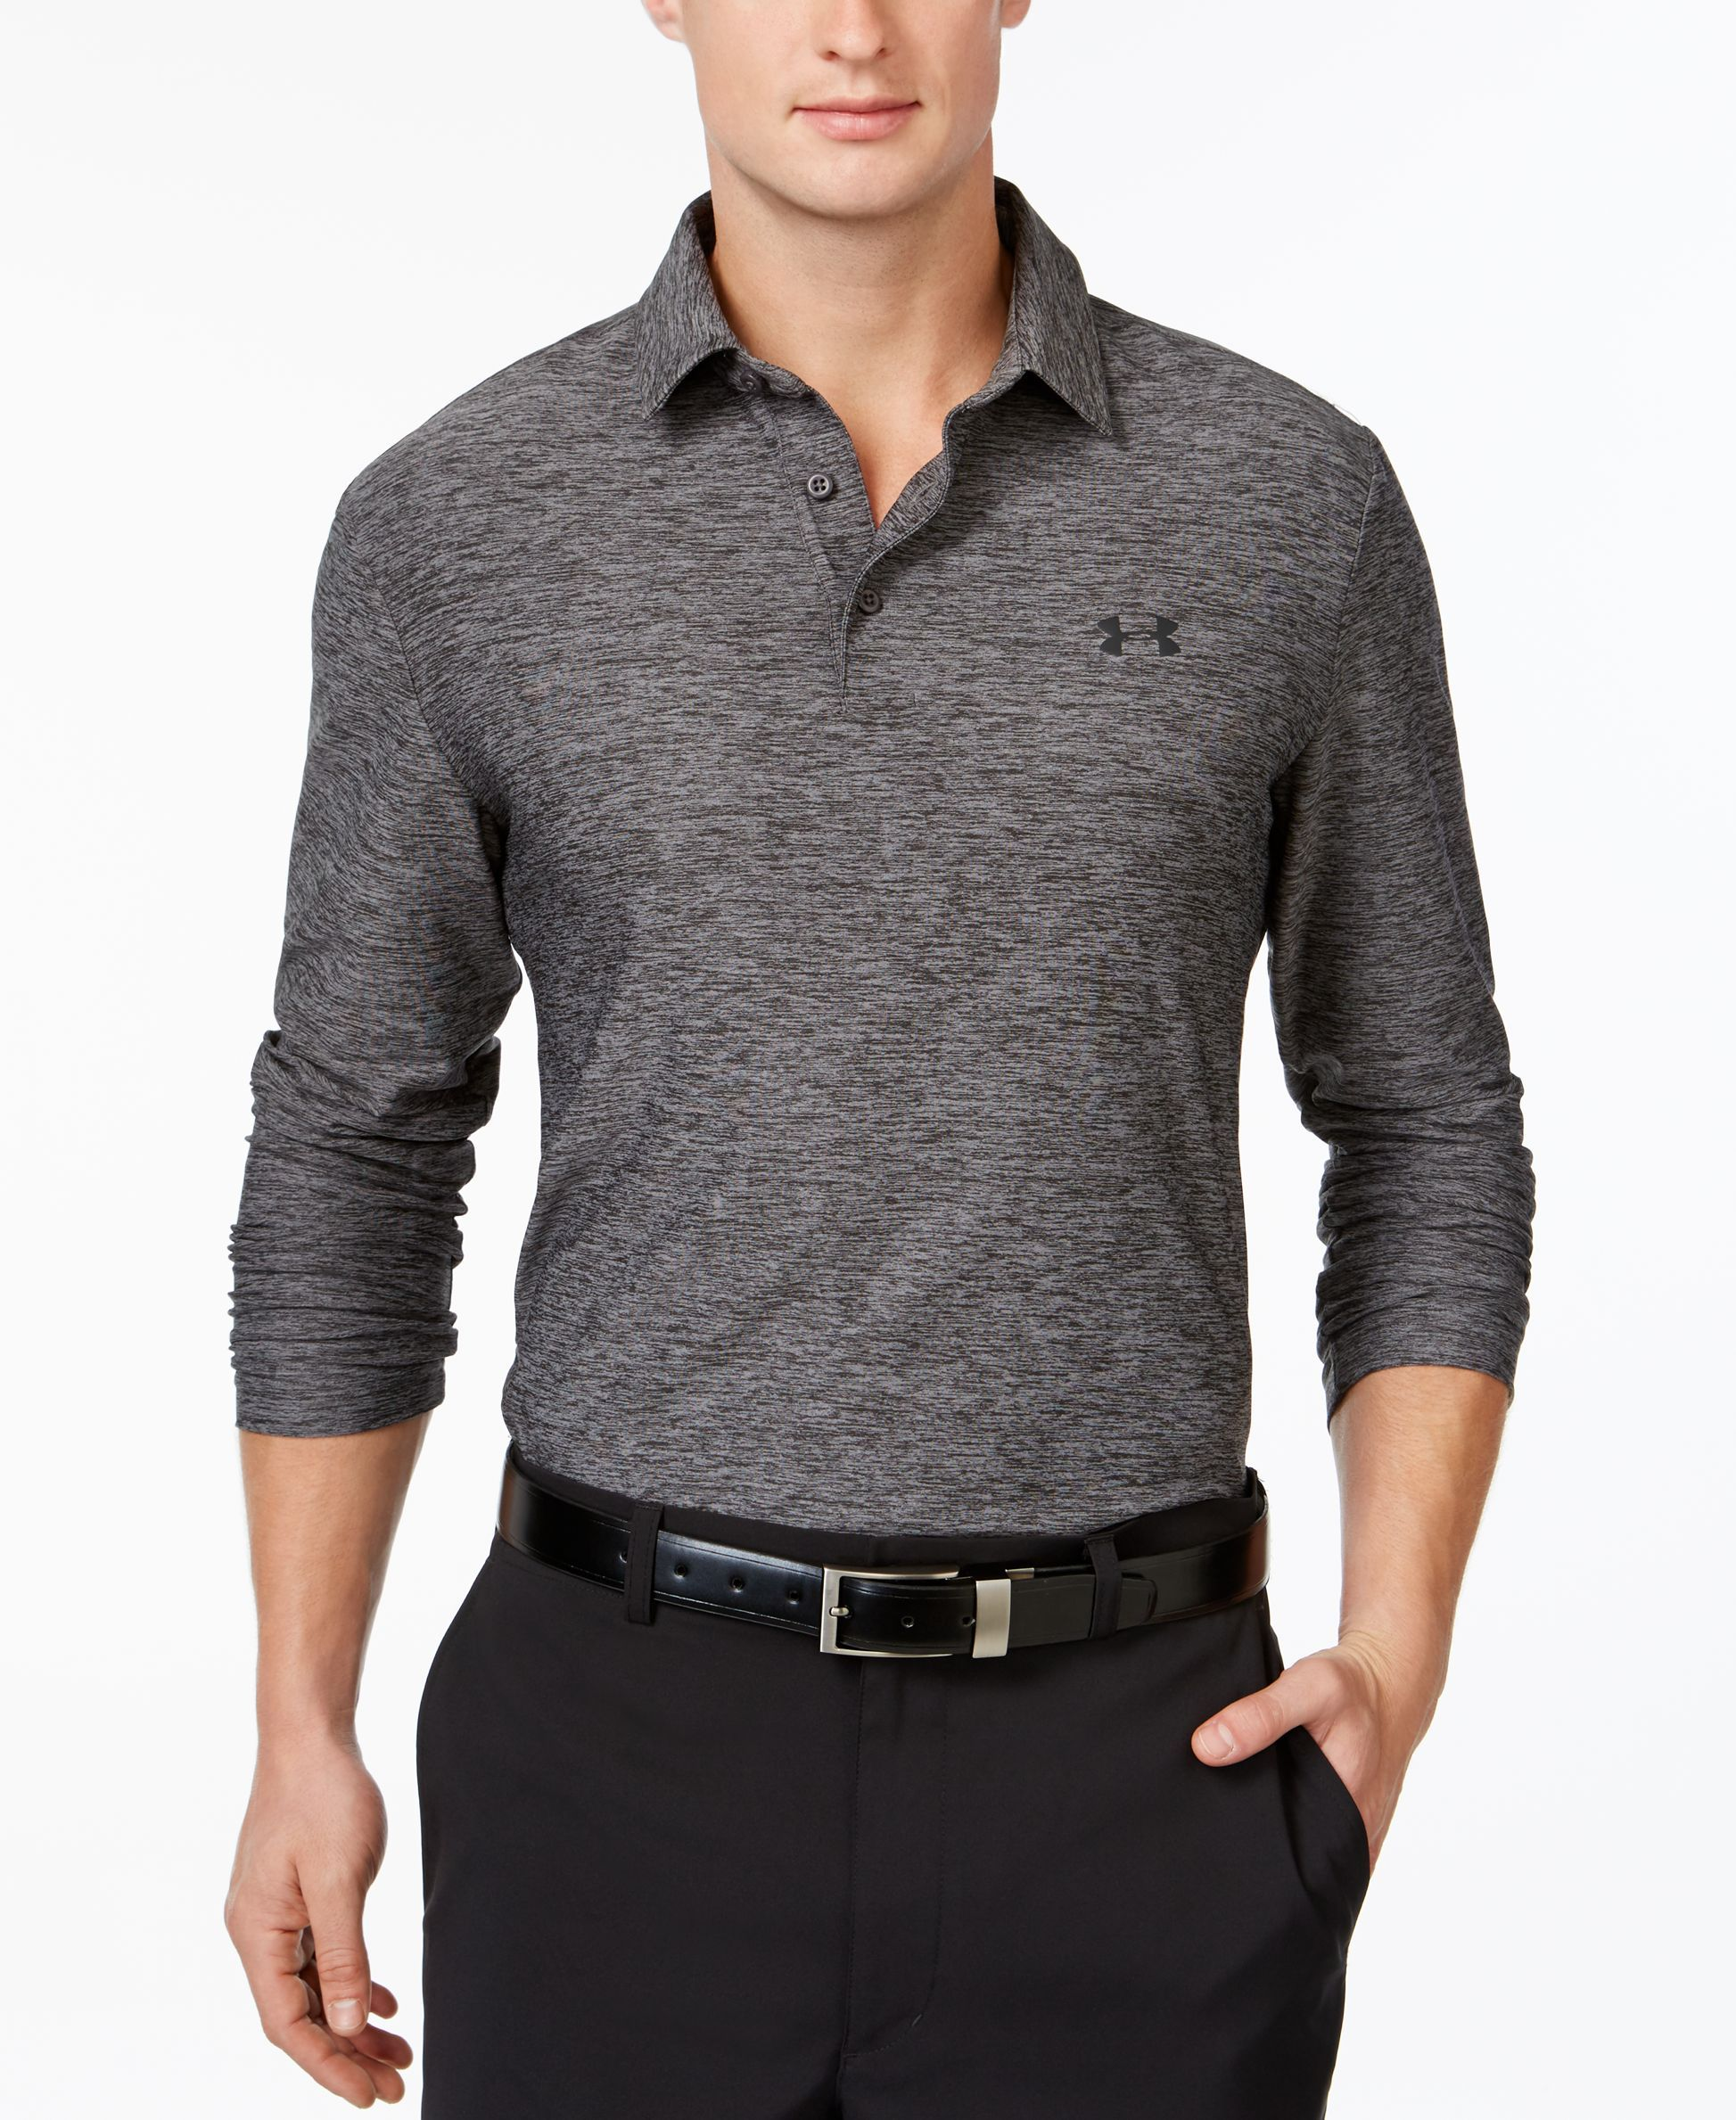 Under Armour Captains Choice Long Sleeve Golf Polo Products In